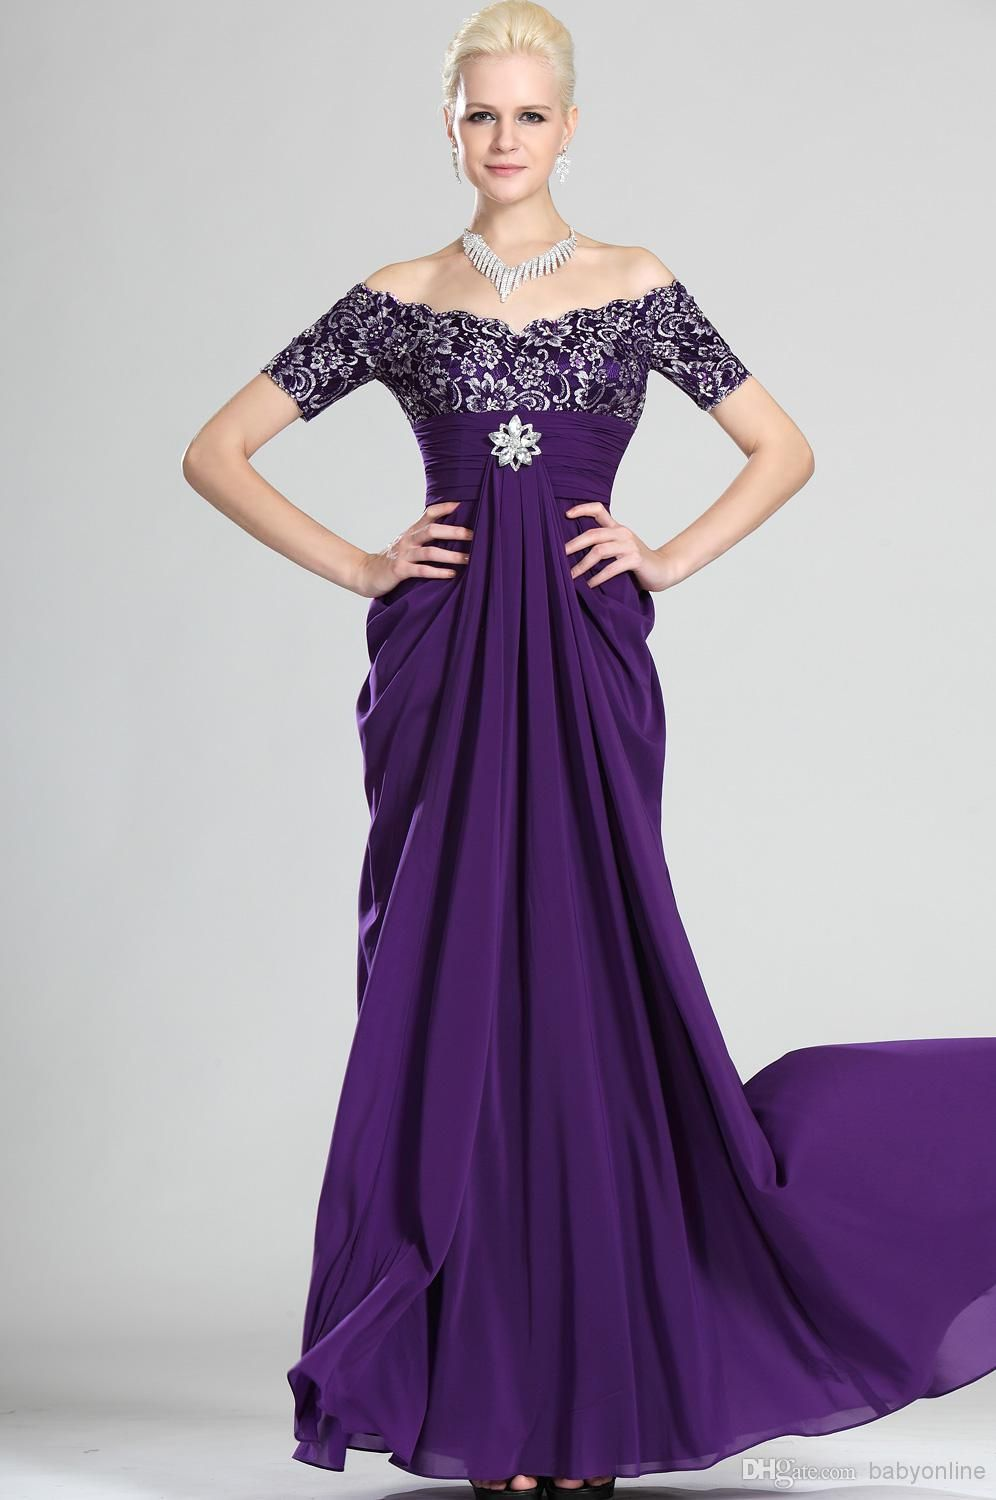 Wholesale Evening Gowns - Buy 2014 Chiffon Off Shoulder Purple ...